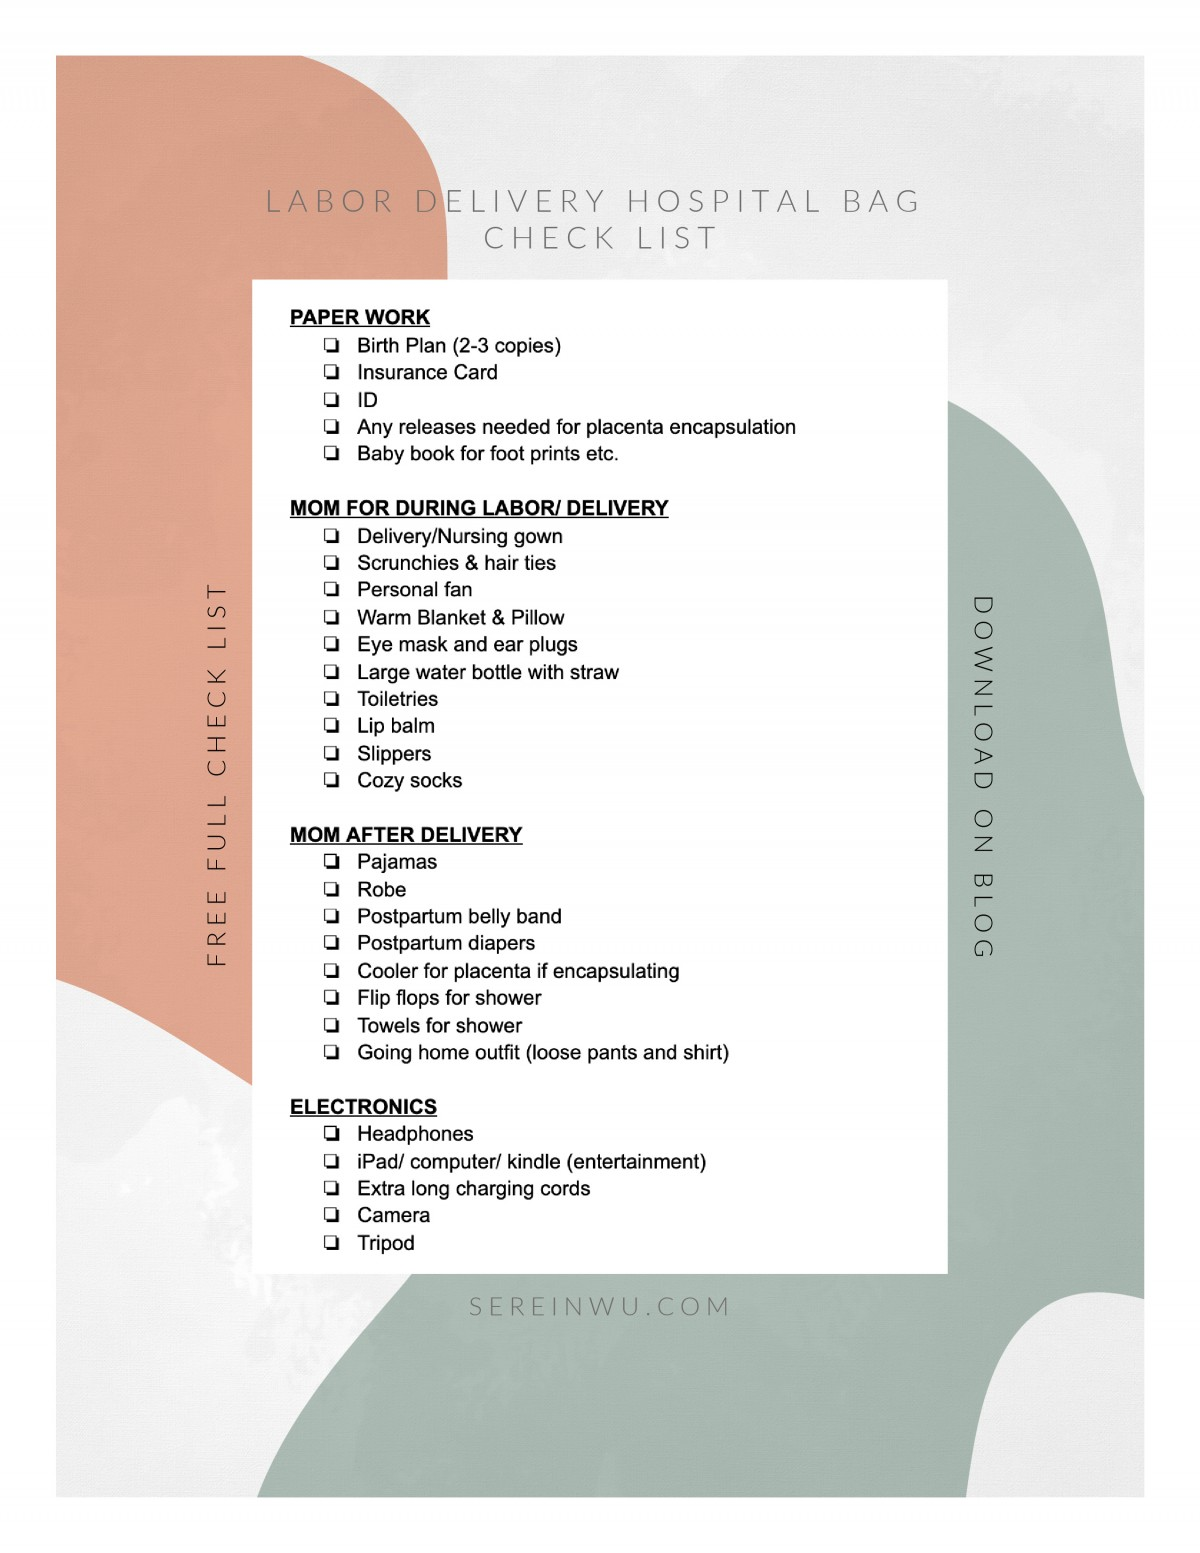 labor delivery hospital check list Serein Wu